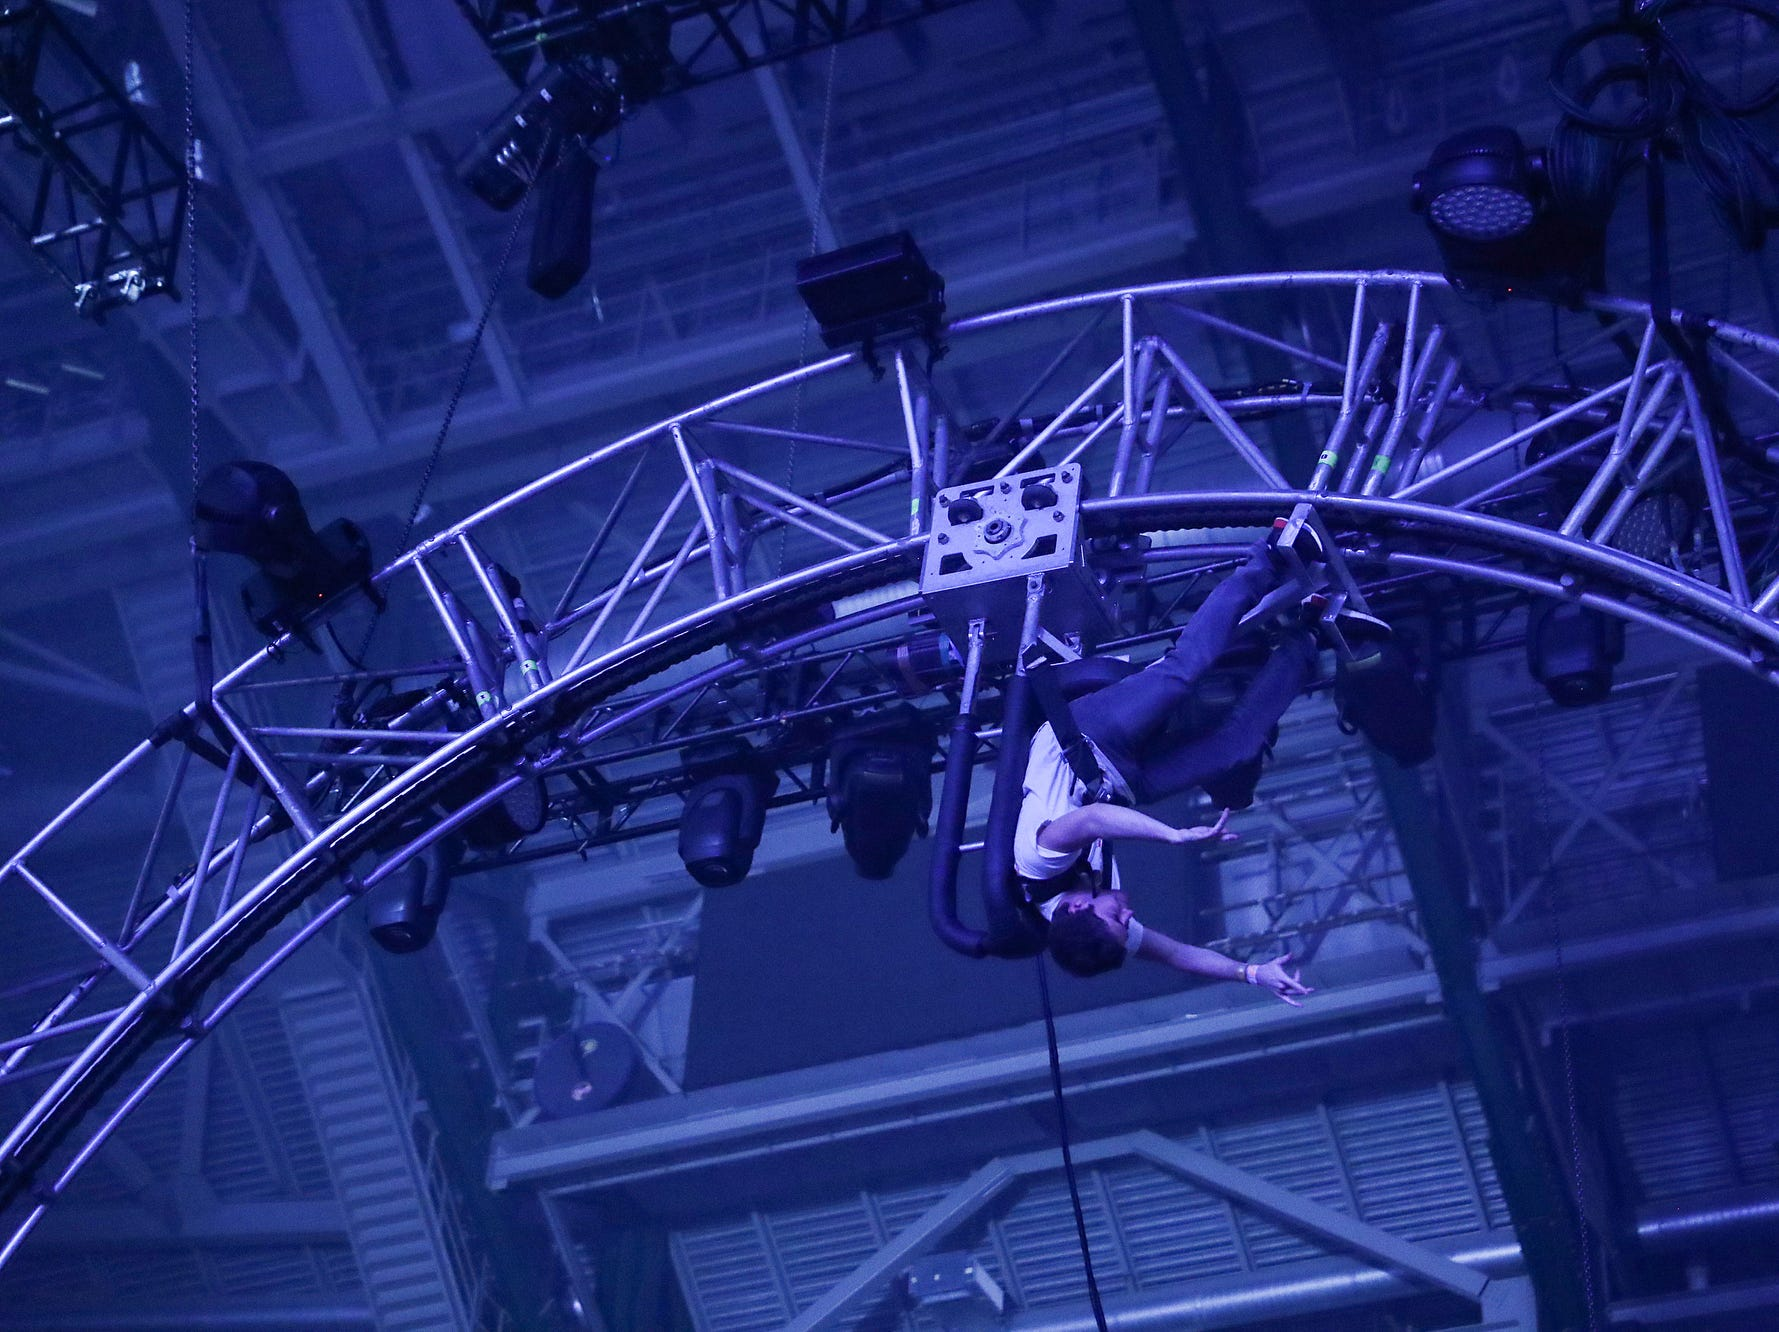 A fans rides a slow-moving circular roller coaster while Travis Scott performs on his Astroworld Tour at Banker's Life Fieldhouse in Indianapolis on Wednesday, Feb. 20, 2018.